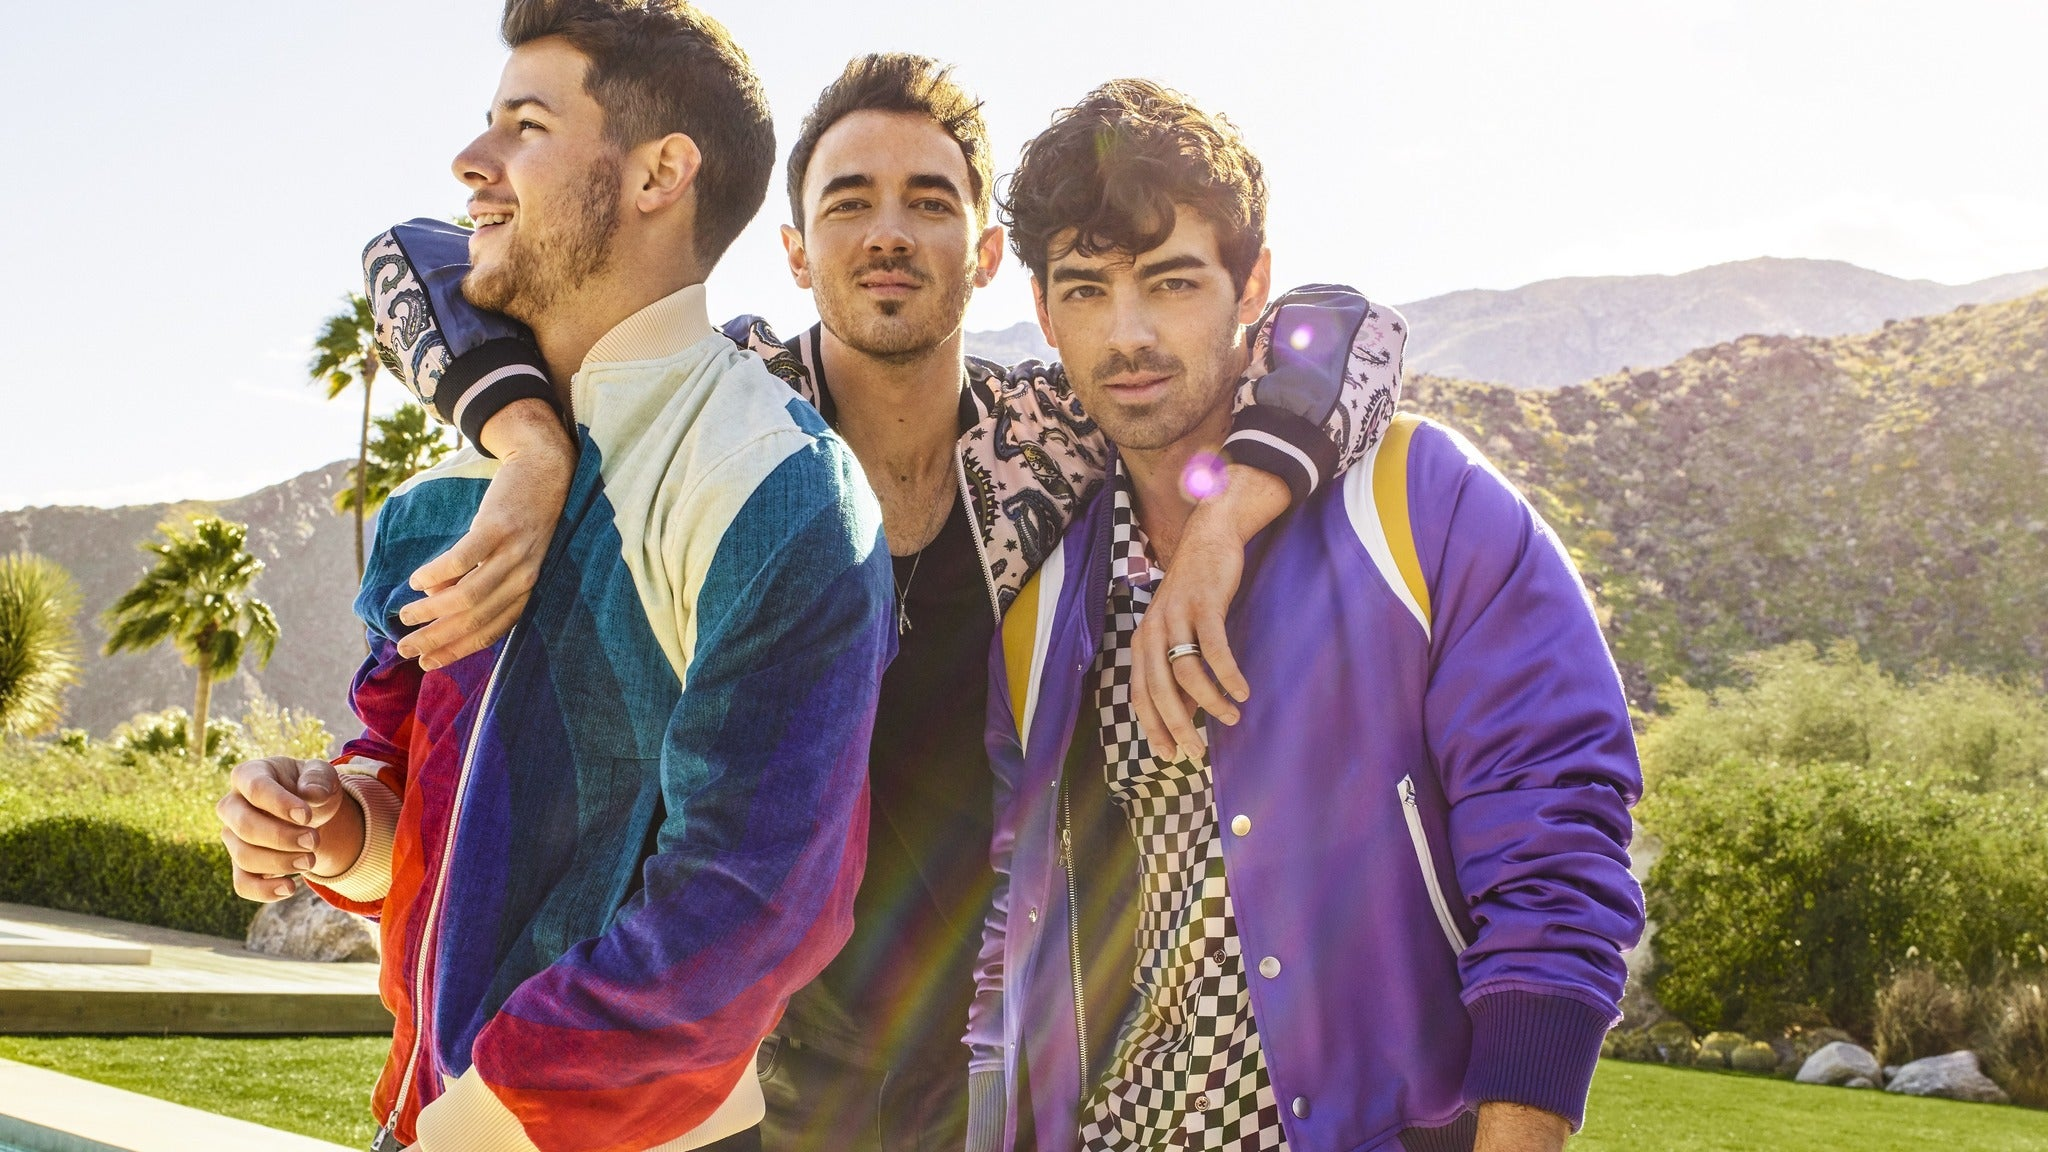 Jonas Brothers: Happiness Begins Tour at Sprint Center